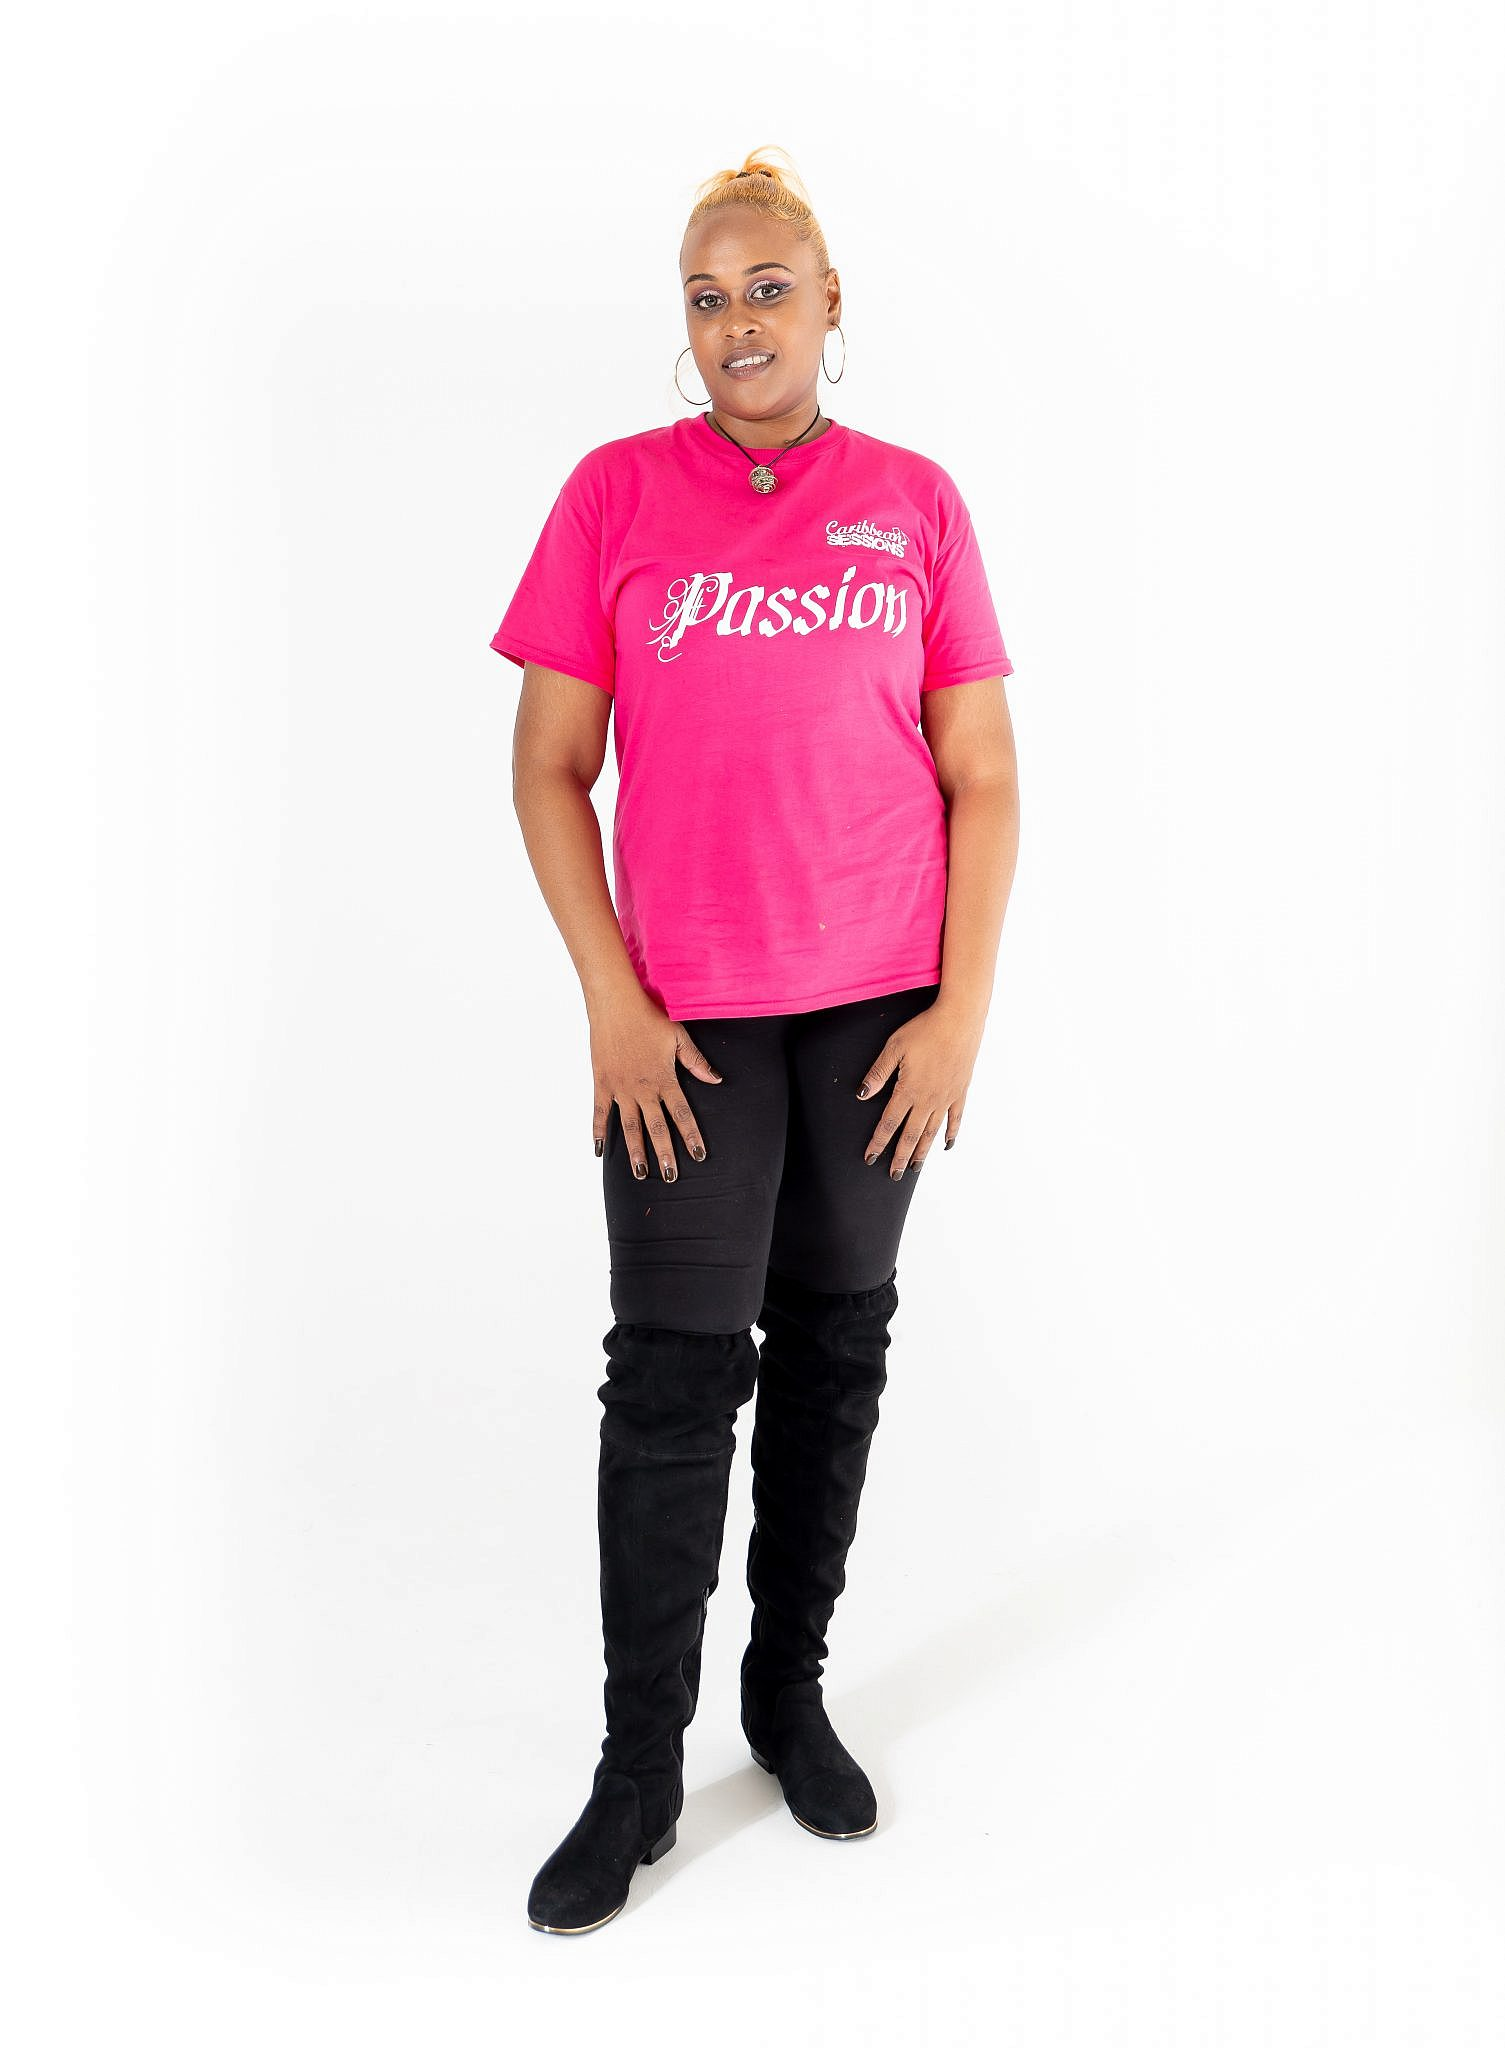 Unisex All Inclusive T-Shirt Package